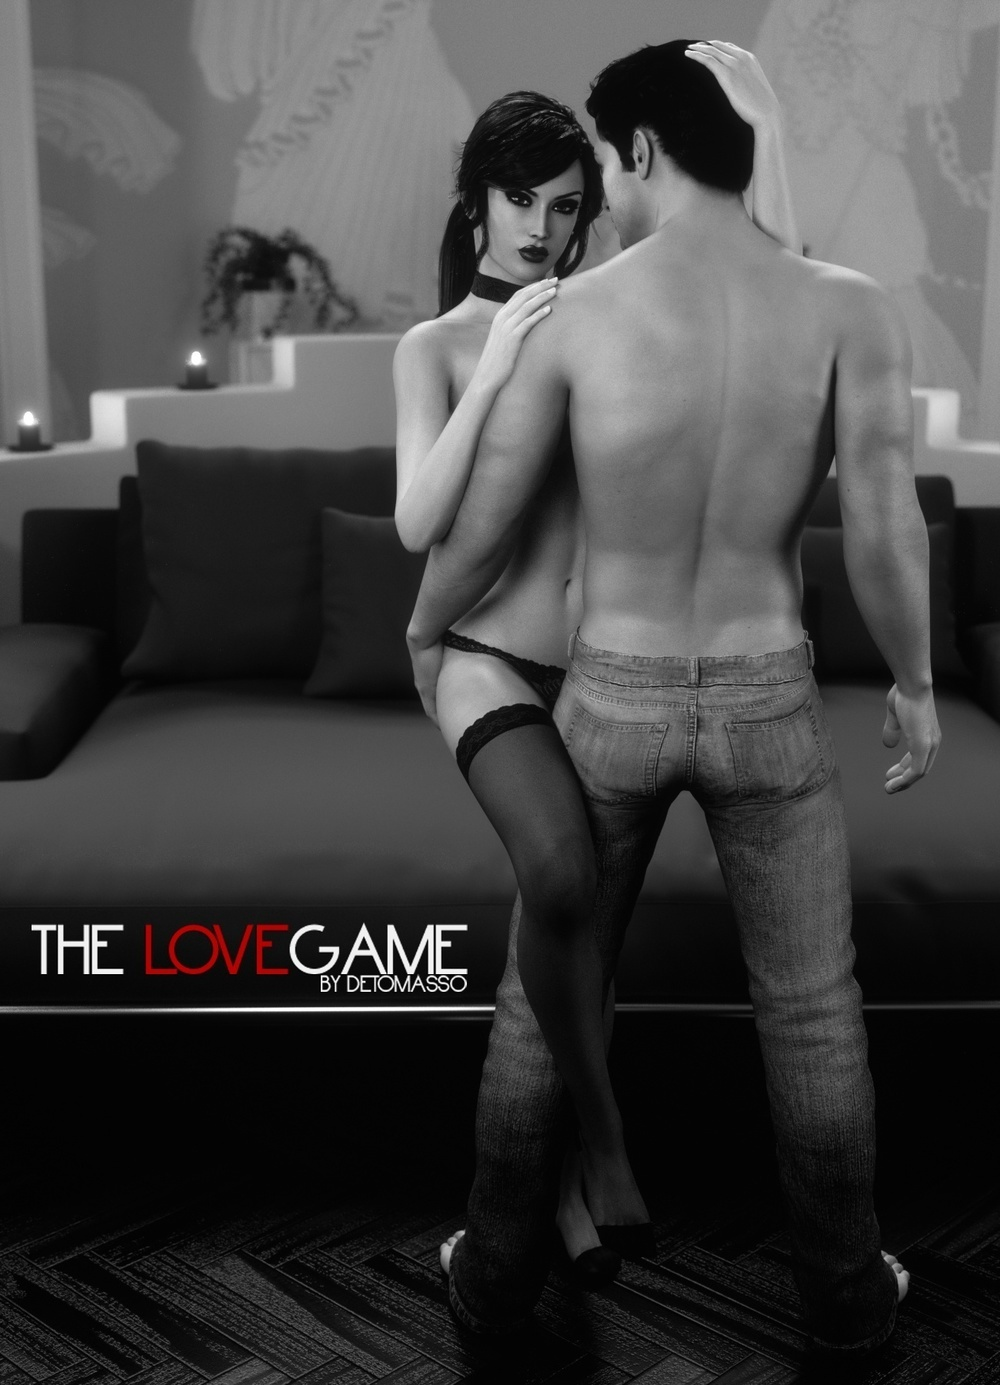 THE LOVE GAME BY DETOMASSO